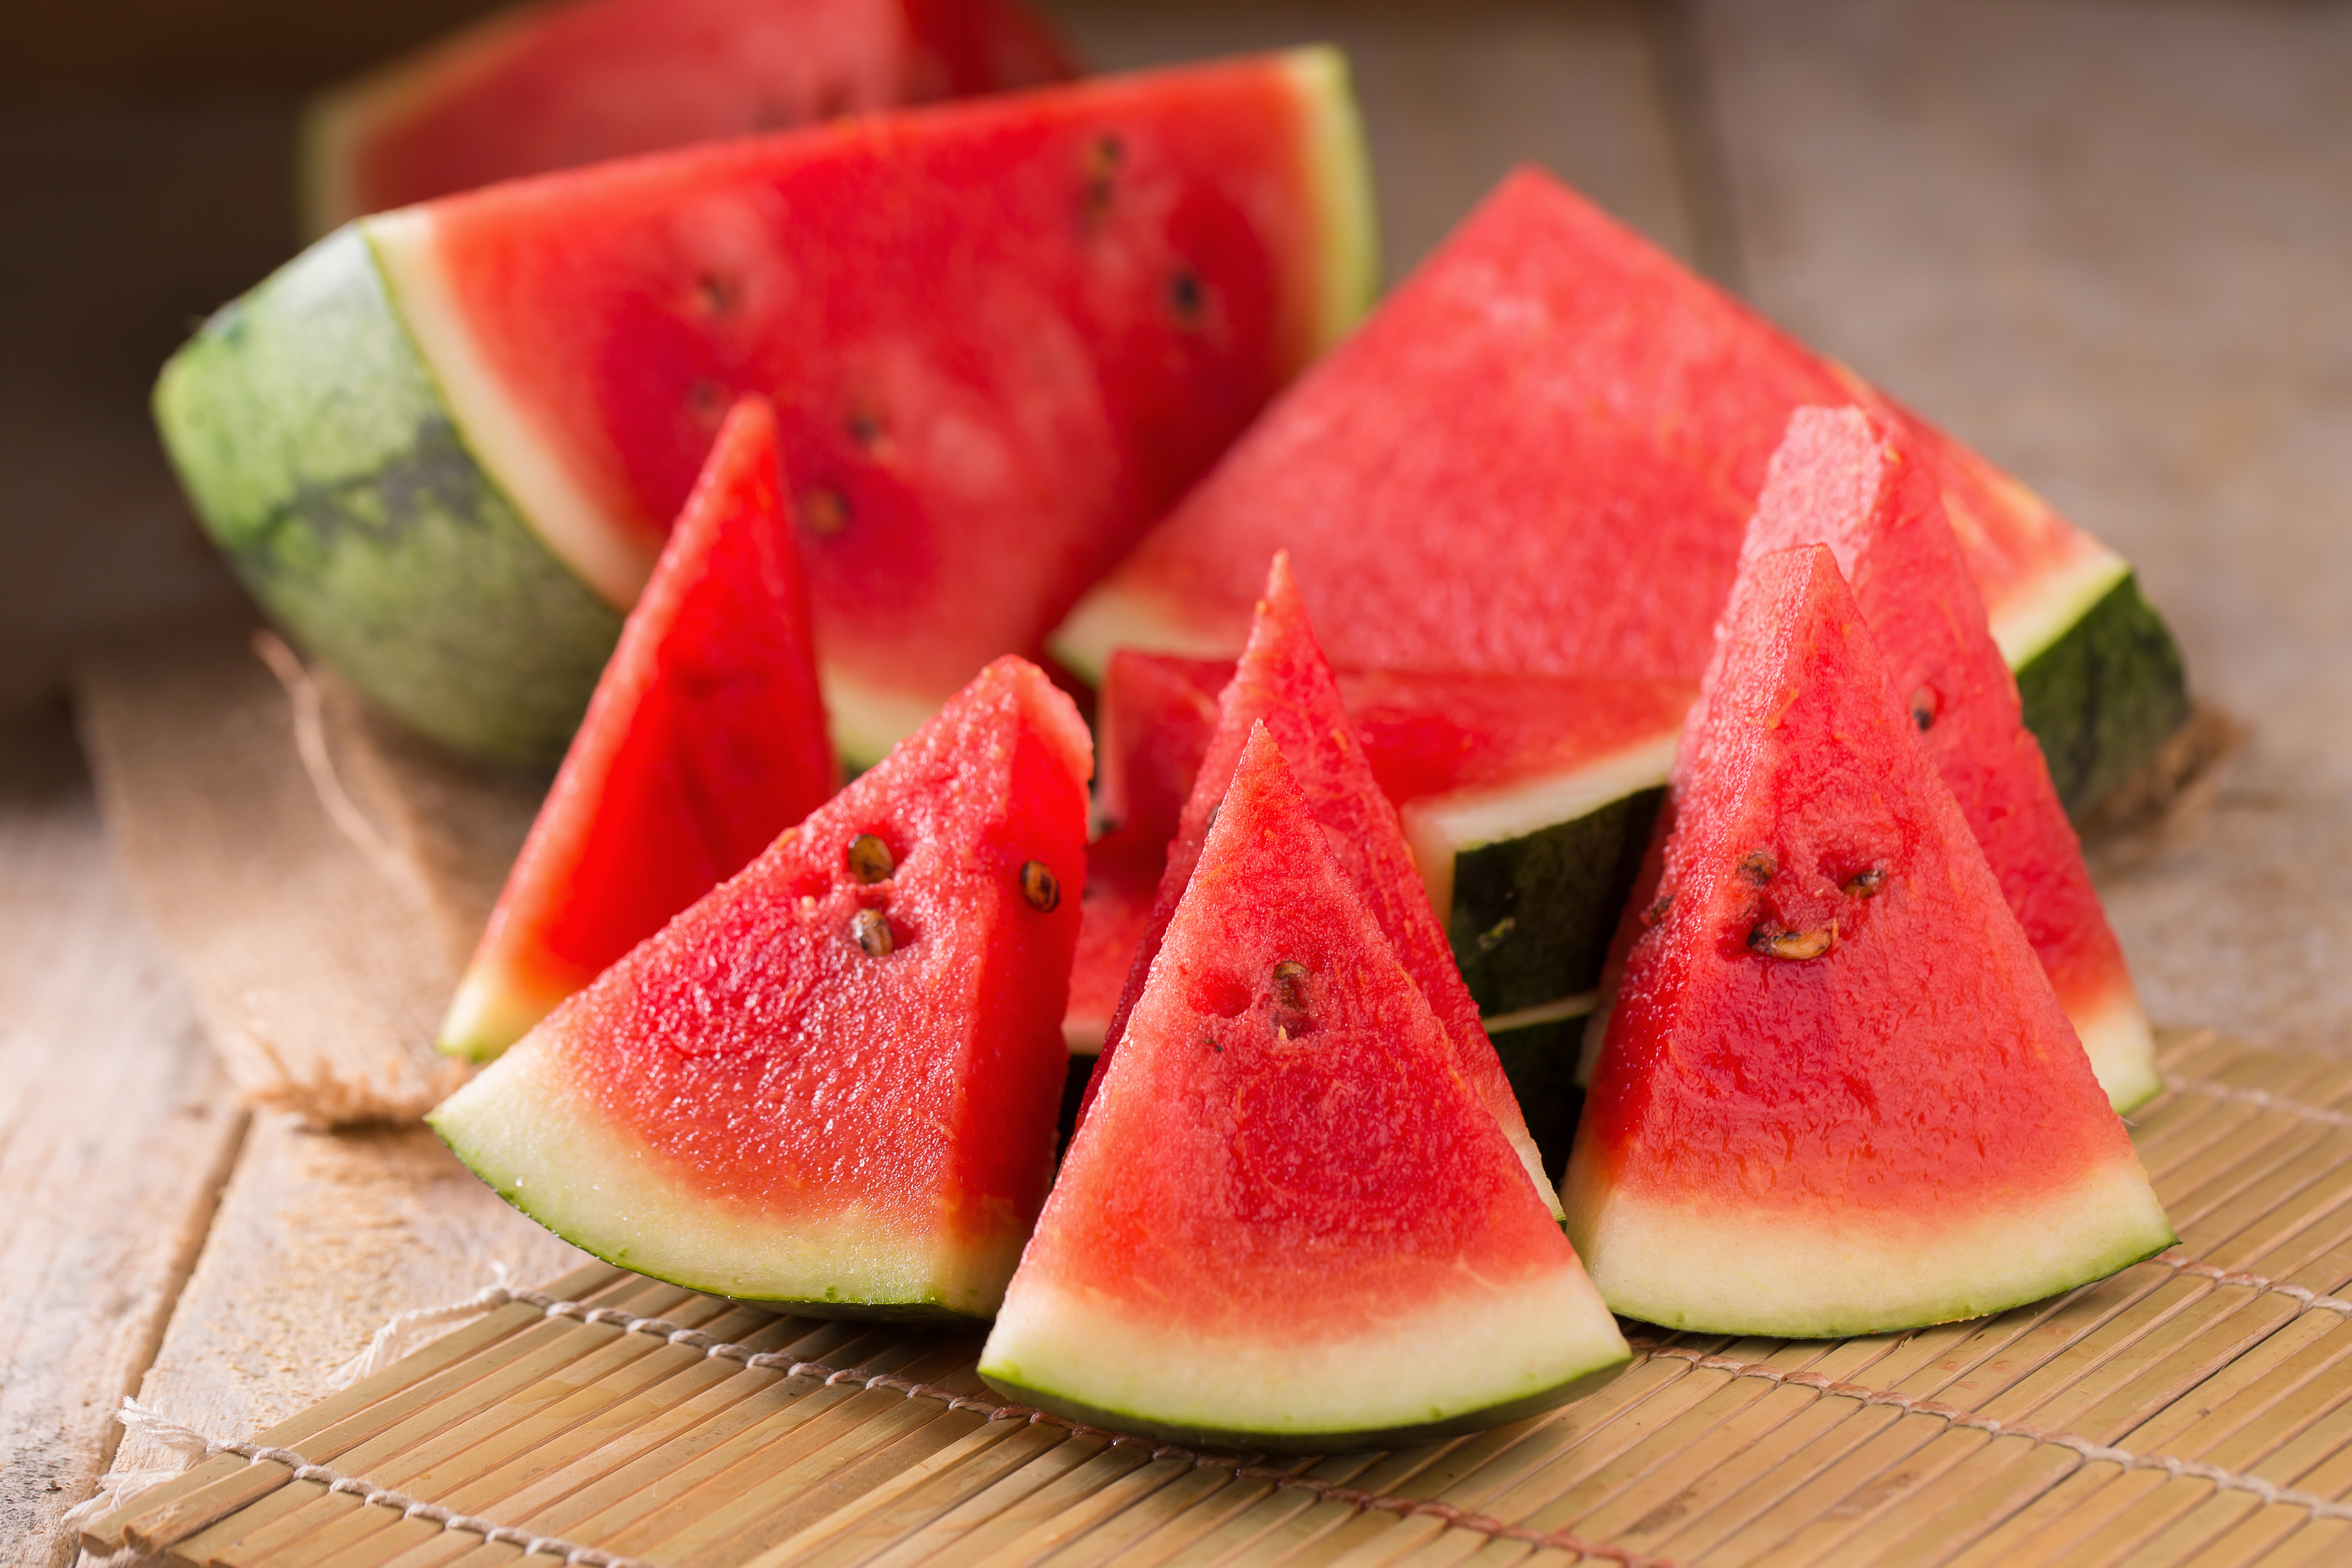 Watermelon,And,Watermelon,Pieces,In,A,Wooden,Background